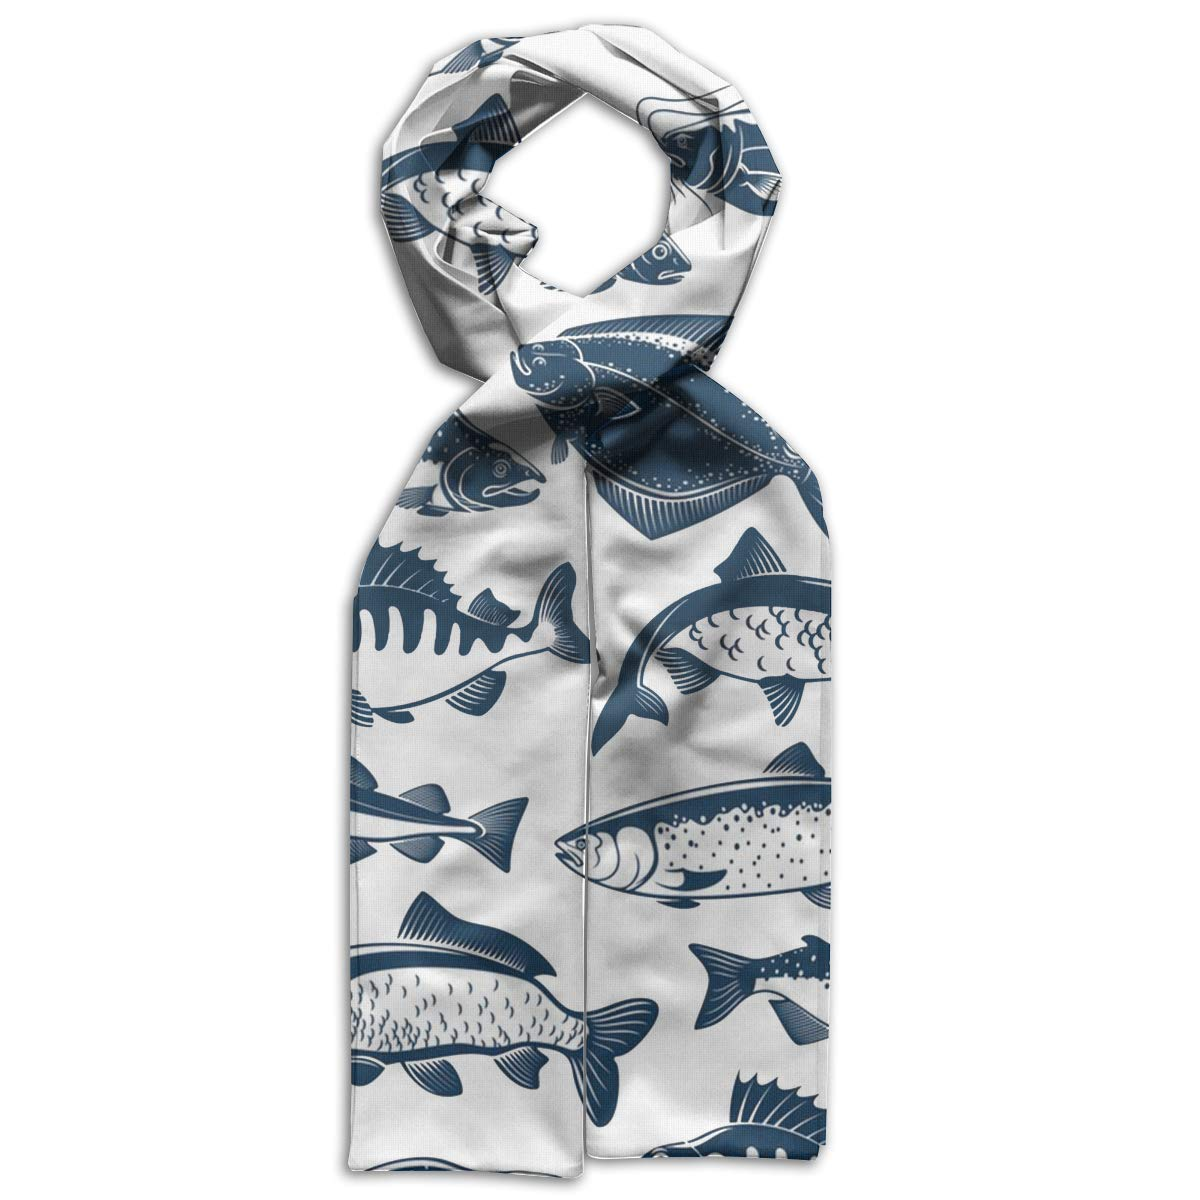 Fish Seamless Pattern Kids Printed Scarf Soft Winter Infinity Scarf Warmer Travel Scarf For Kids Perfect Birthday Gift